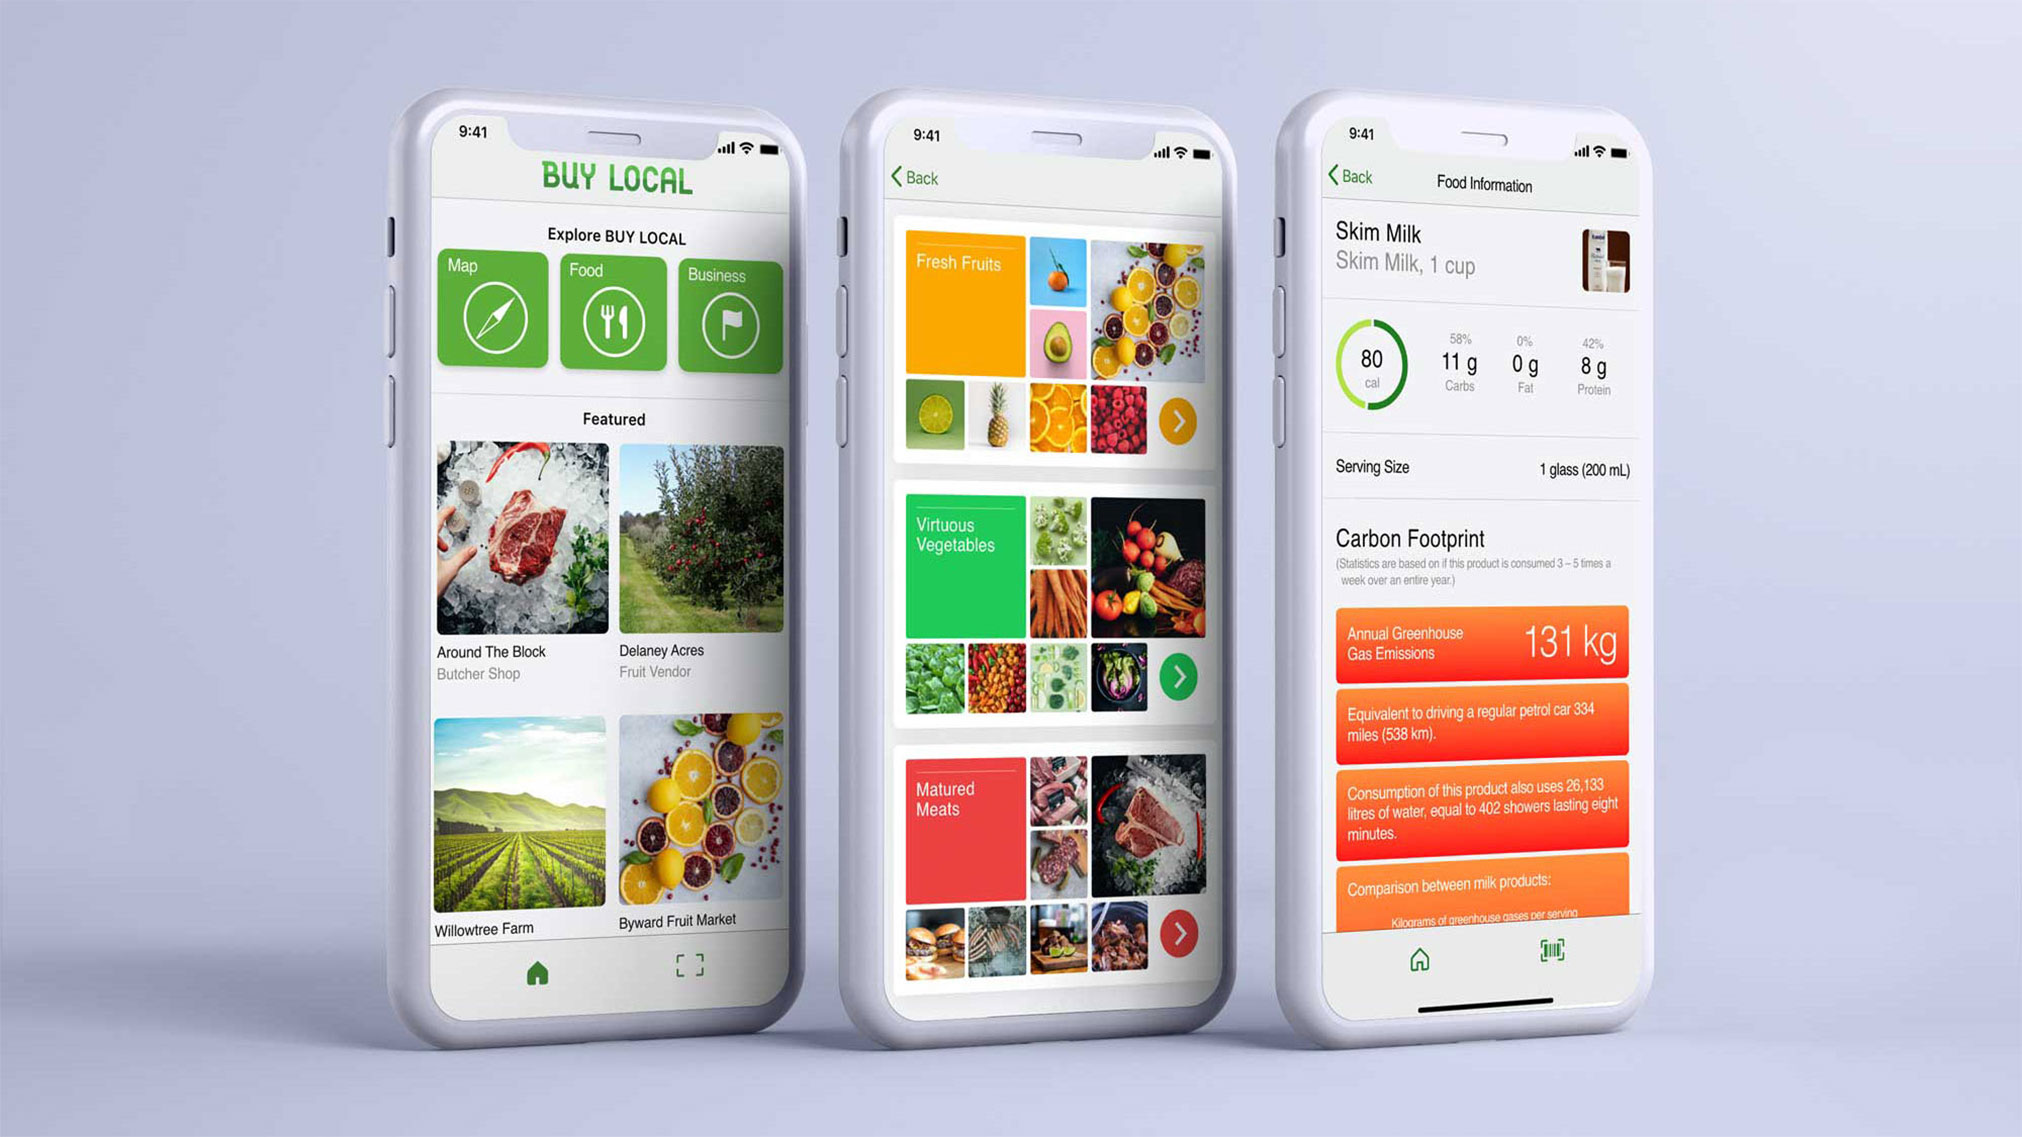 This app design helps solve a United Nation's Sustainable Development Goal #13 directed towards Improving Climate Action. It helps local people find locally sourced food and lessens their carbon footprint.